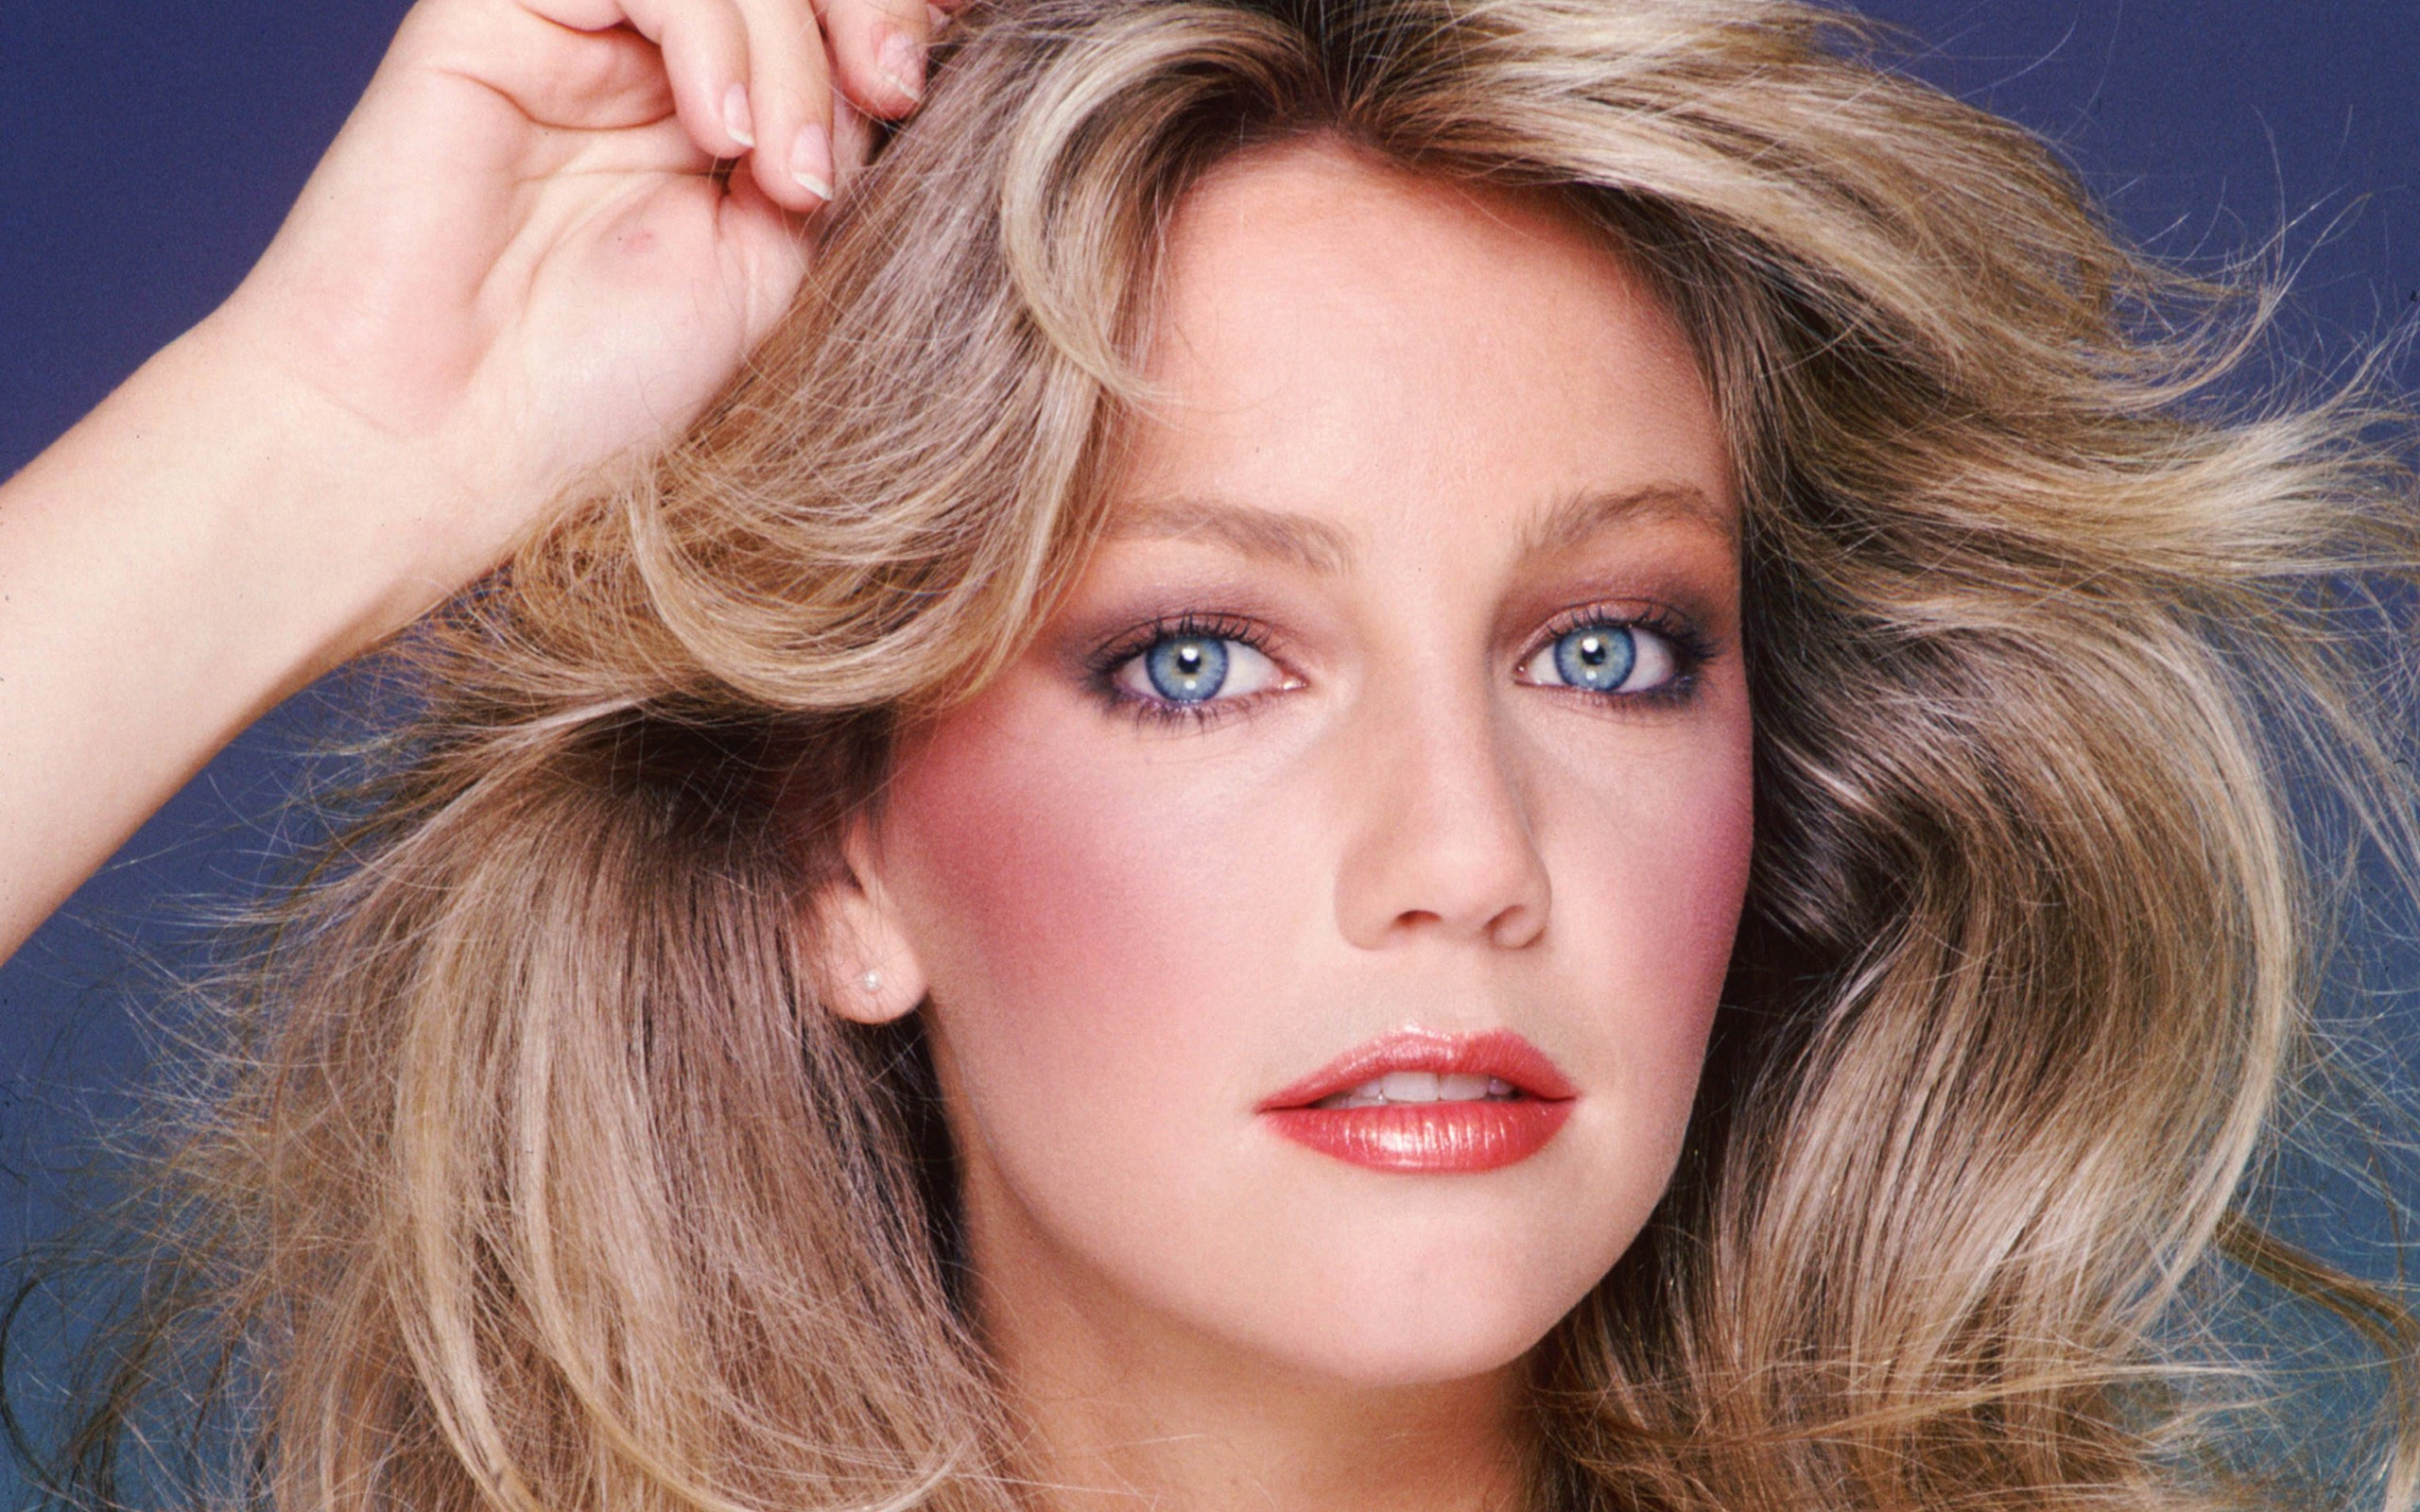 2560x1600 - Heather Locklear Wallpapers 4